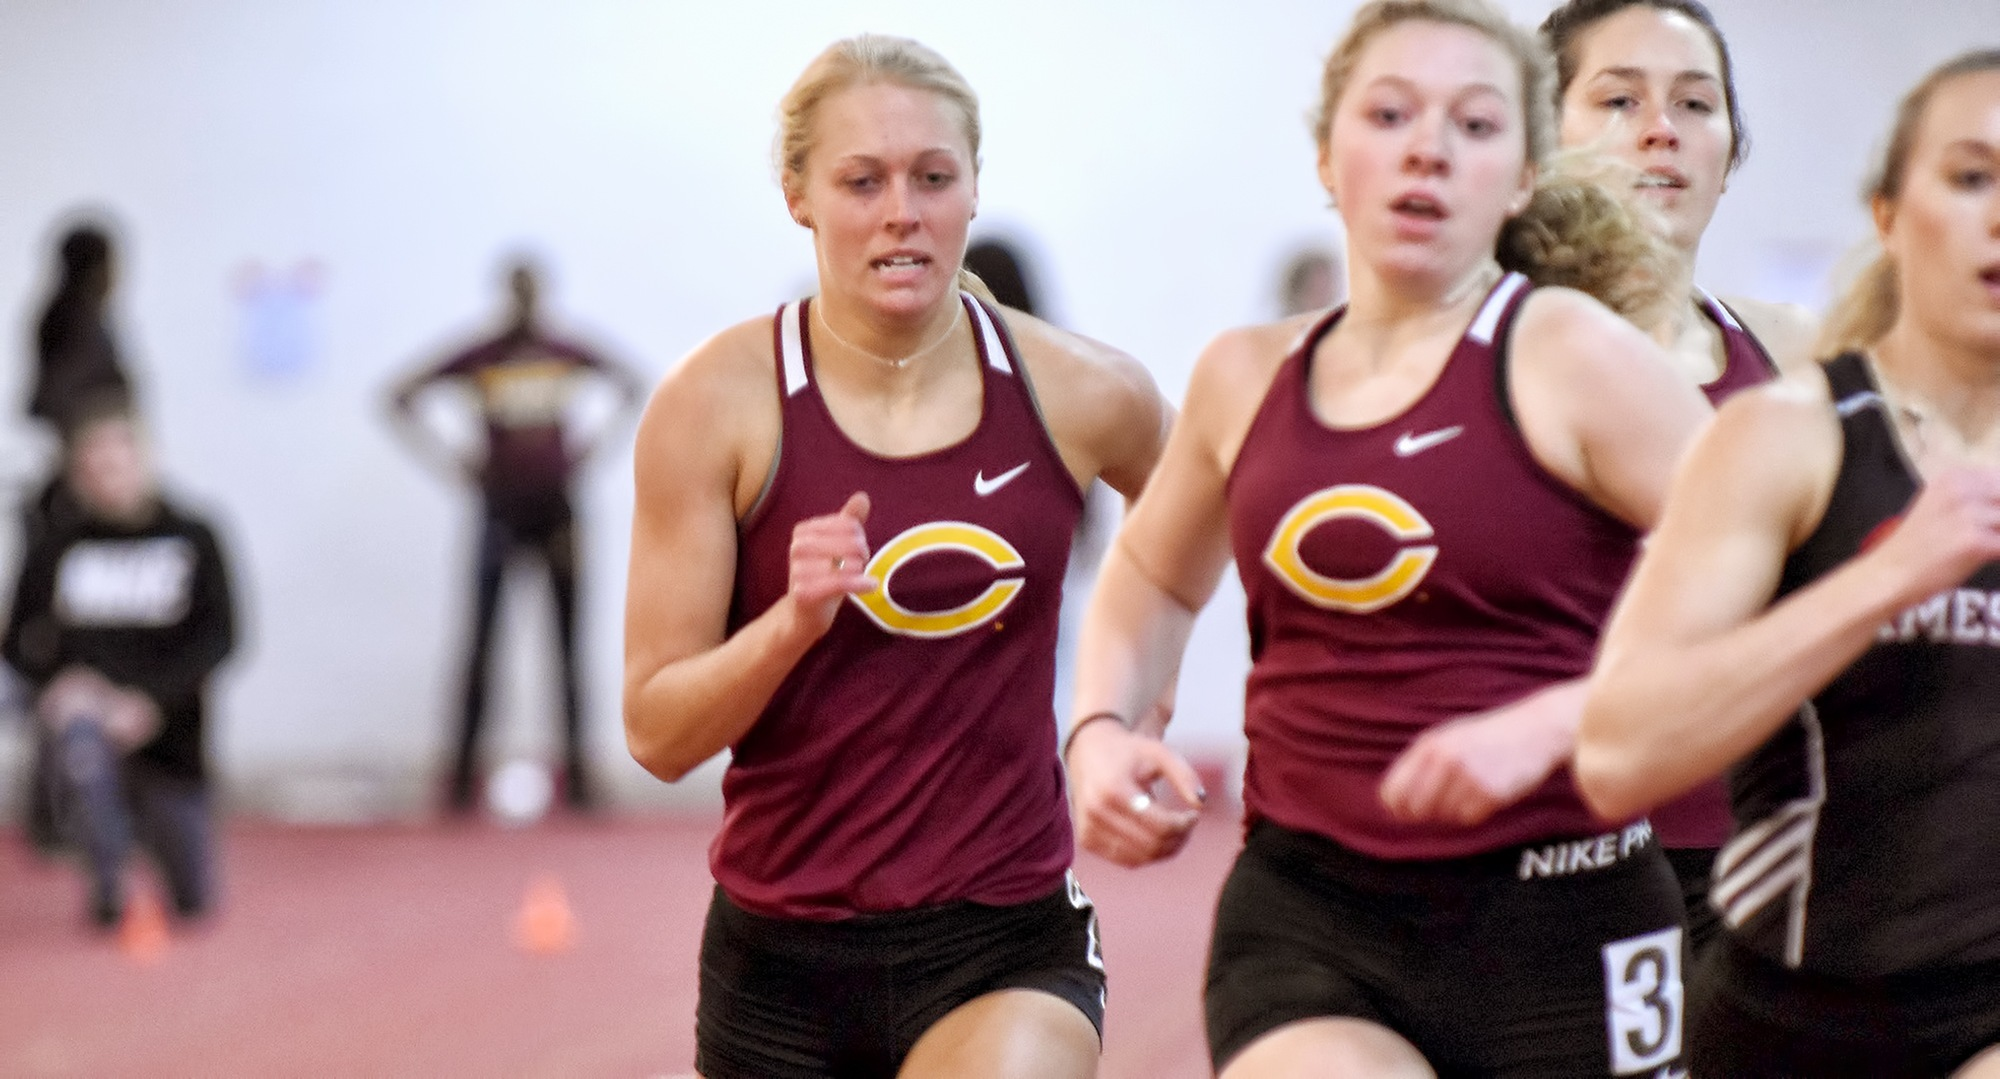 Miriah Forness (L) and Josie Herrmann both put up Top 15 school times in the 800 meters at the UND Tune-Up Meet.